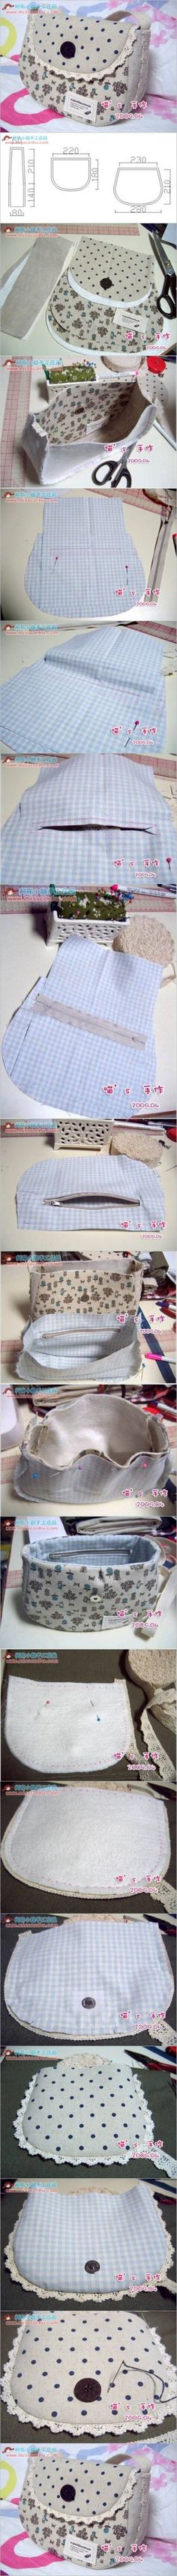 How to Sew a Simple Summer Handbag (Diy Bag) Diy Sewing Projects, Sewing Tutorials, Sewing Crafts, Sewing Diy, Sewing Hacks, Fabric Handbags, Fabric Bags, Sewing Clothes, Diy Clothes